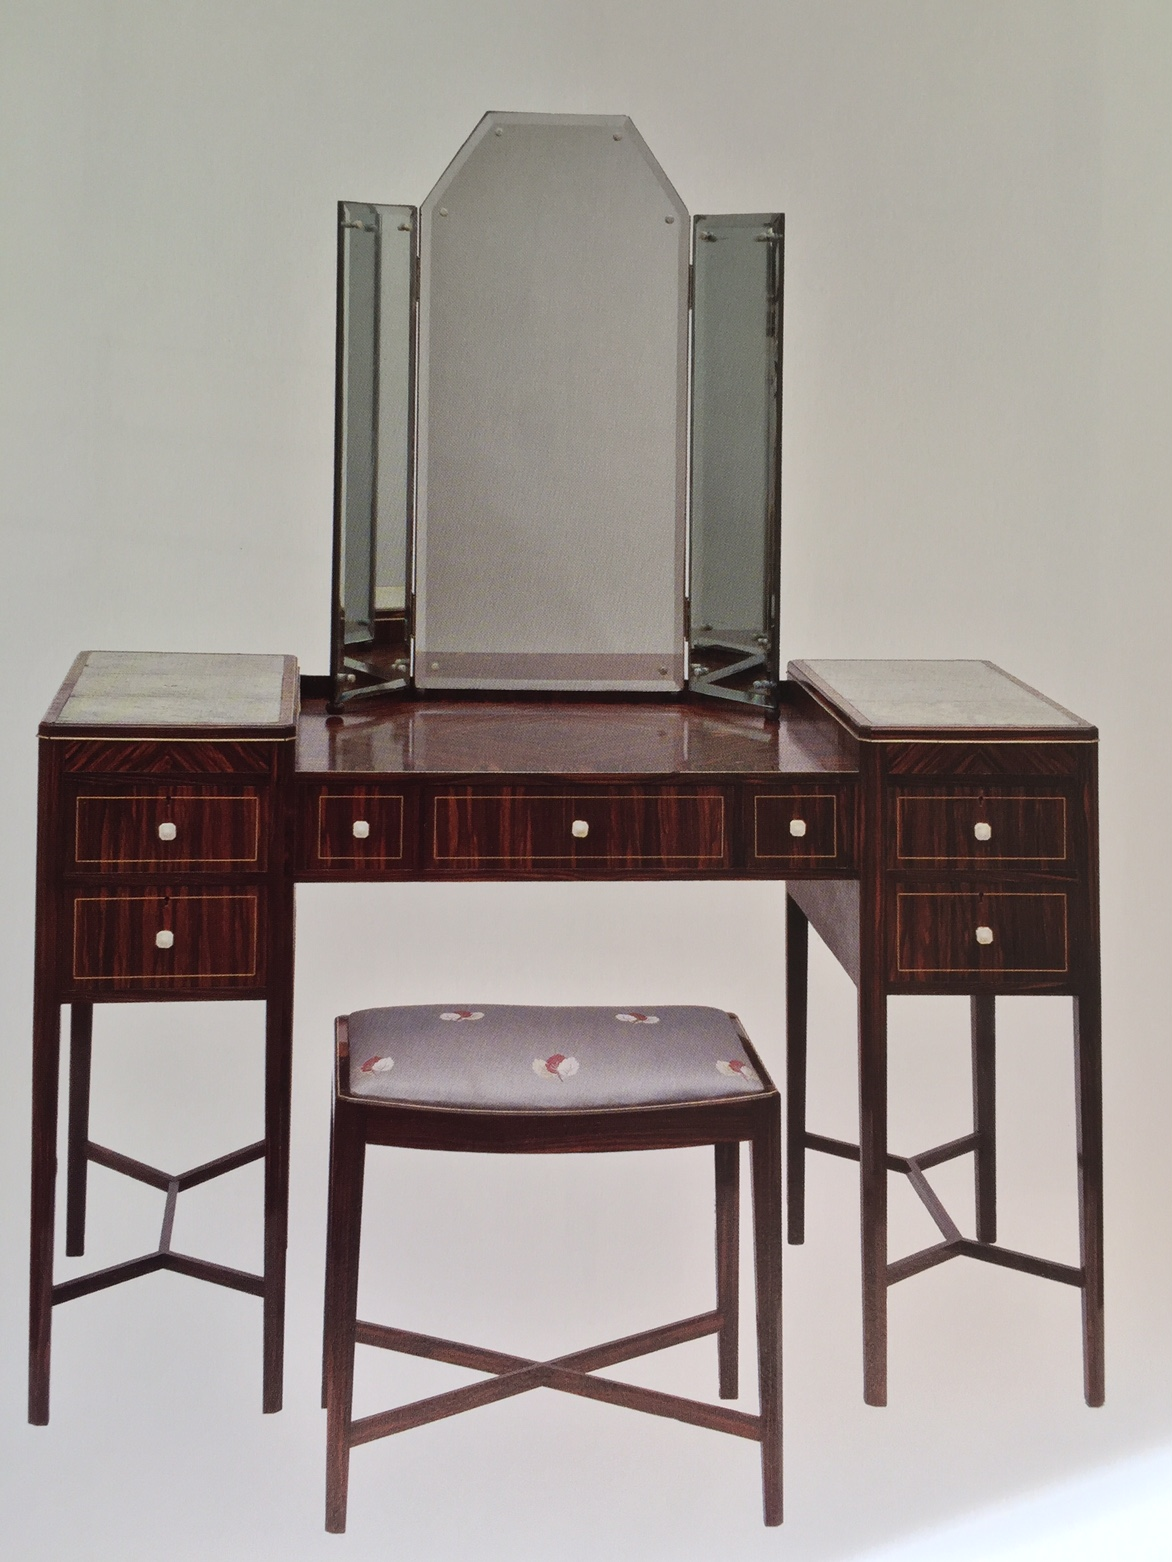 F.J. Johnson, Dressing table and stool, 1926-27